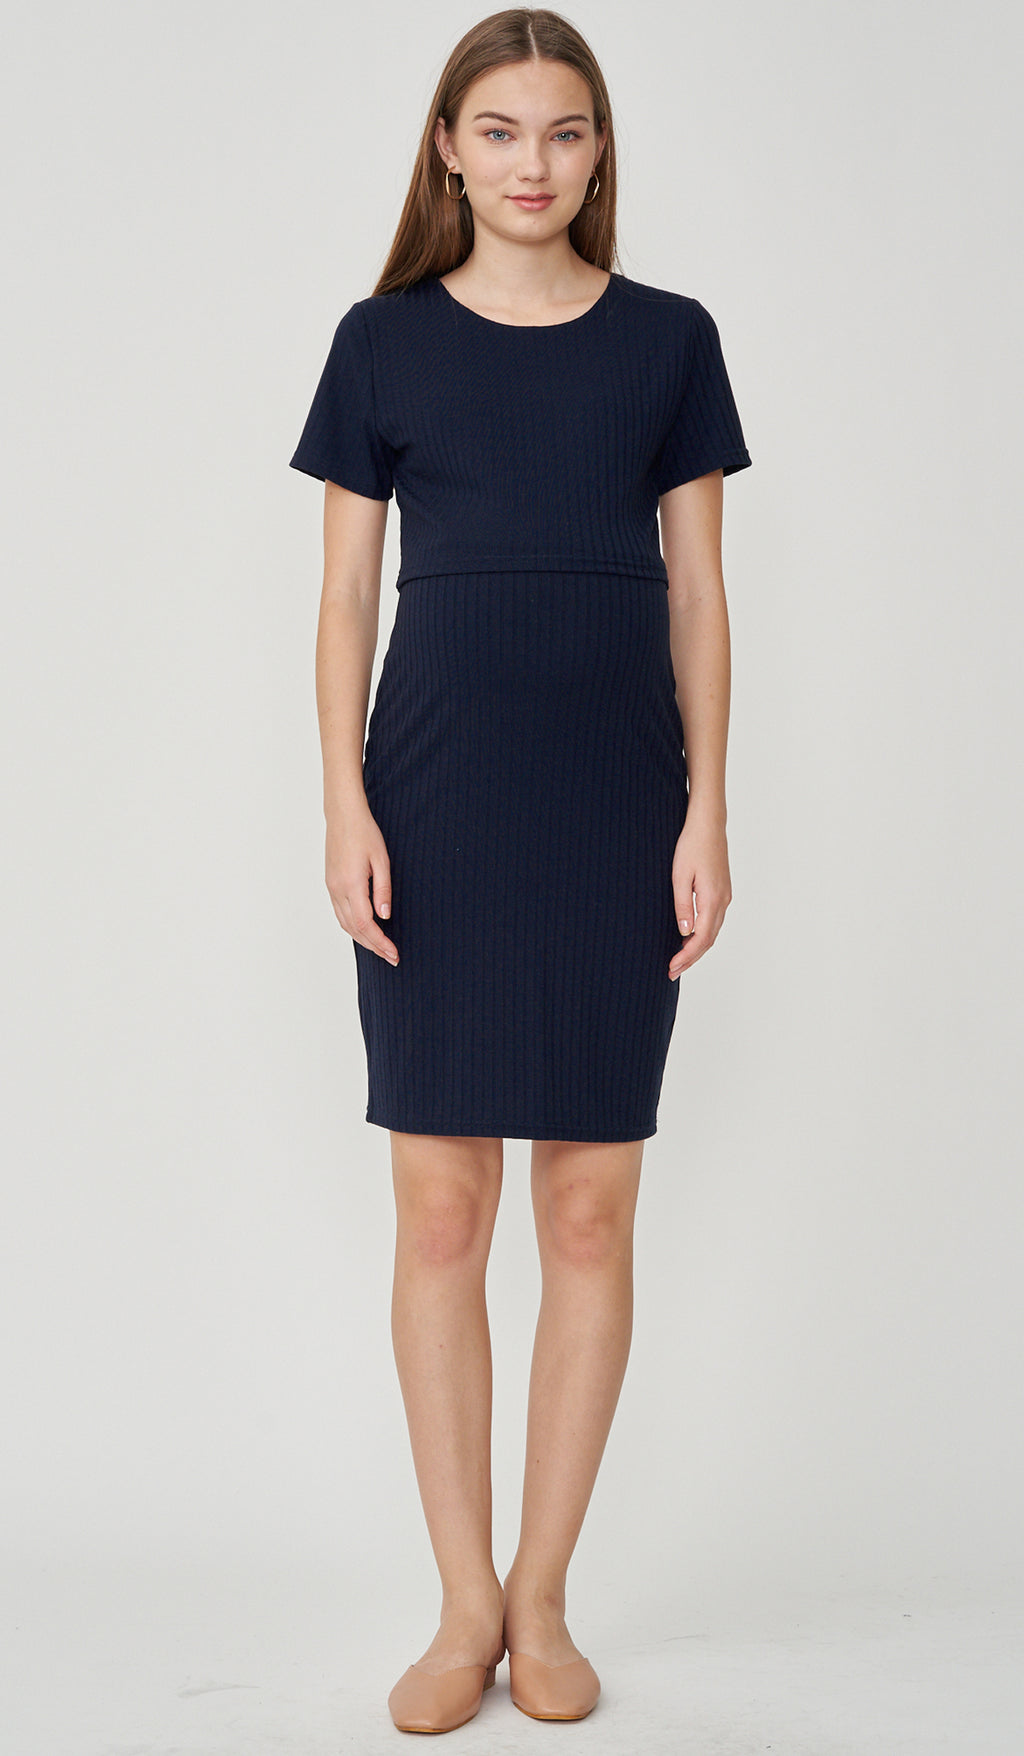 REI BODYCON NURSING DRESS NAVY